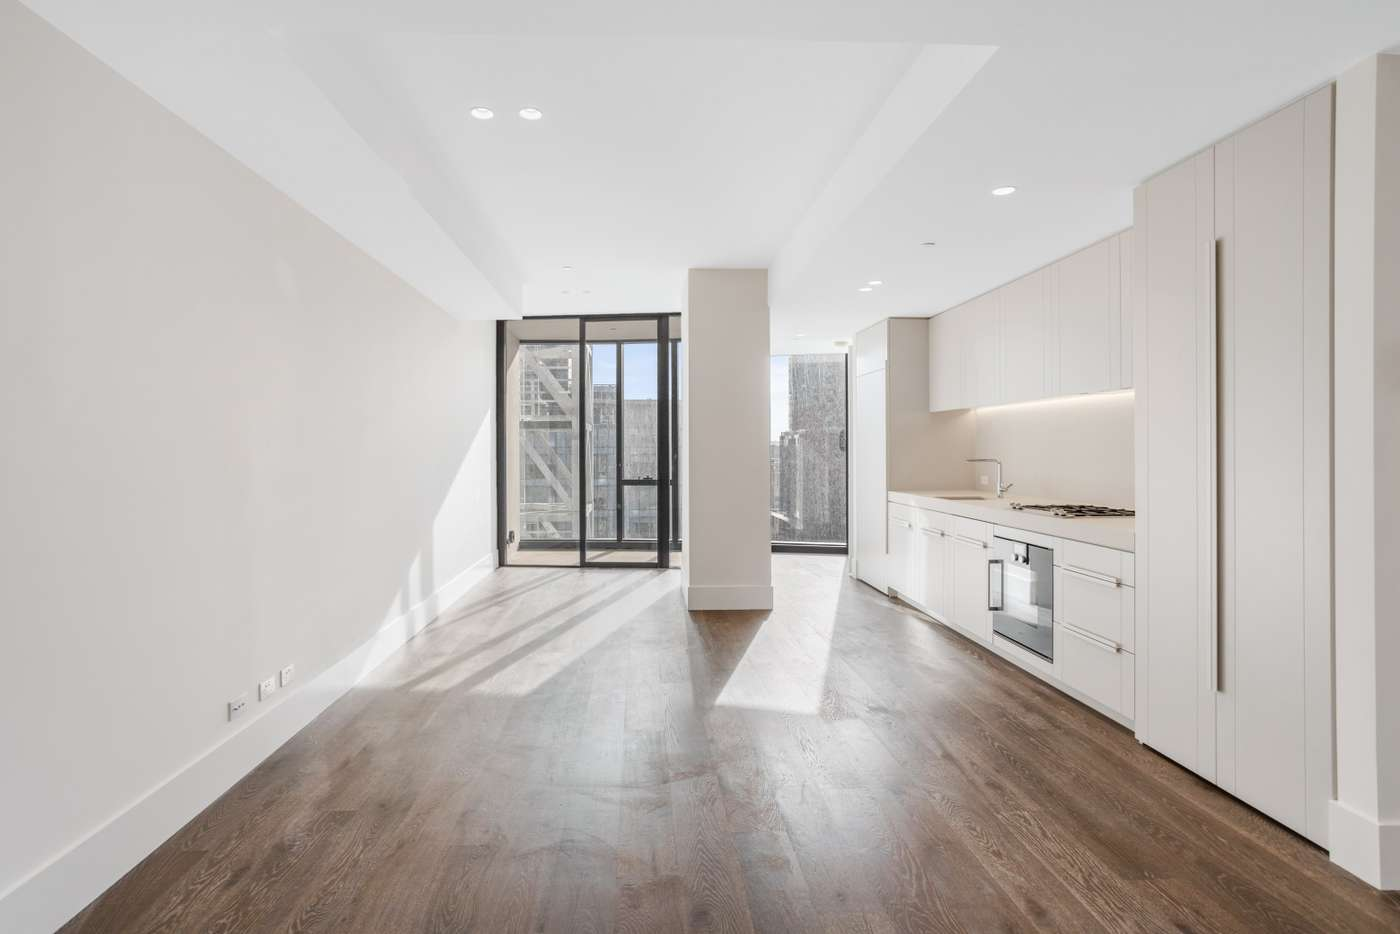 Main view of Homely apartment listing, 2504/1 Almeida Crescent, South Yarra VIC 3141